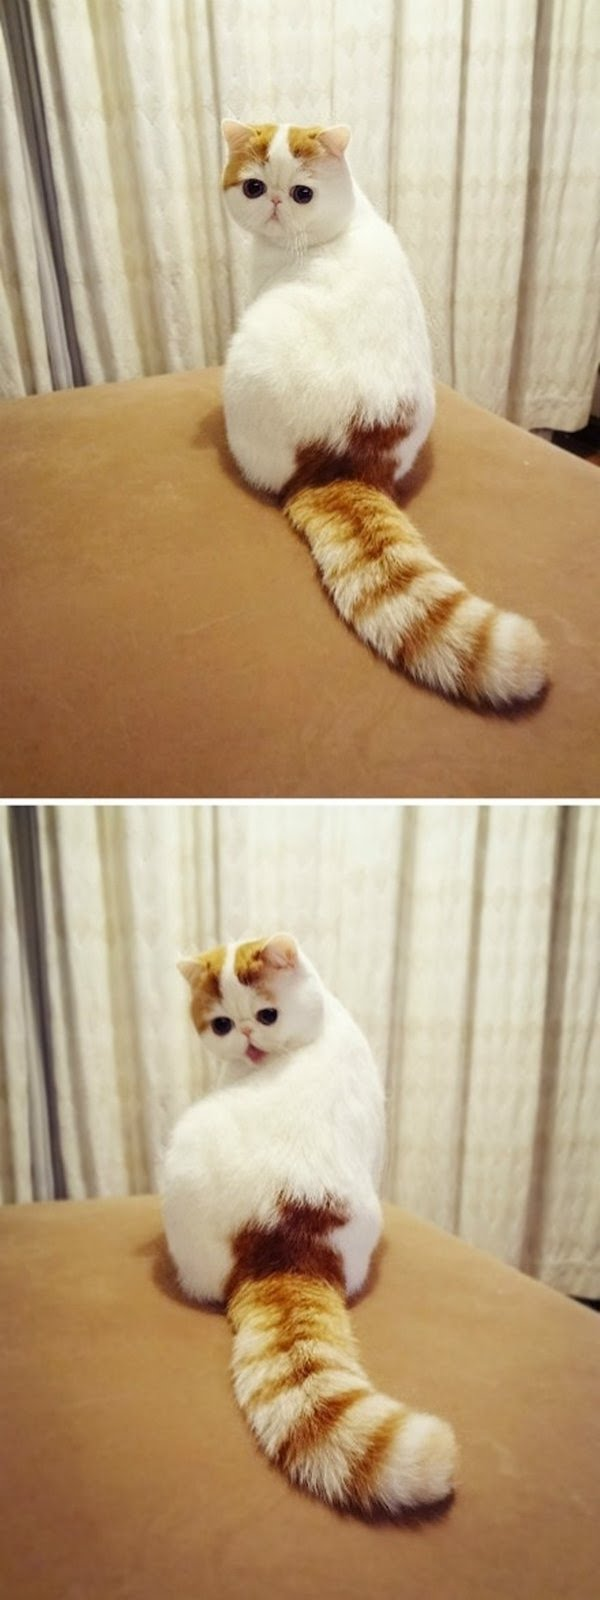 funny cat pictures, cute cat with big tail